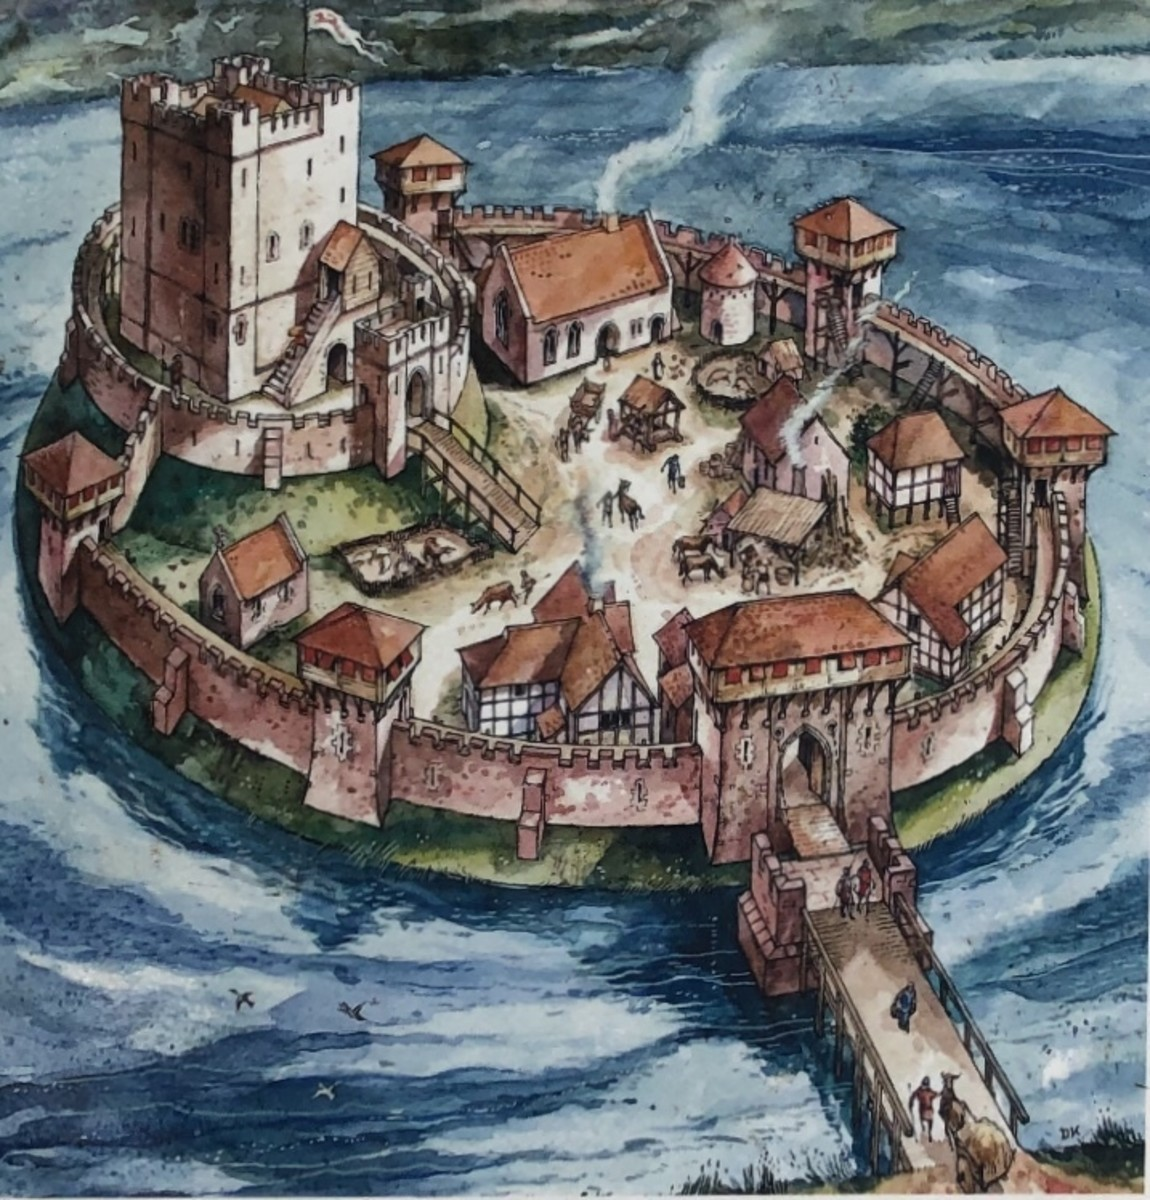 Another artists impression of the New Castle, surrounded by the pool